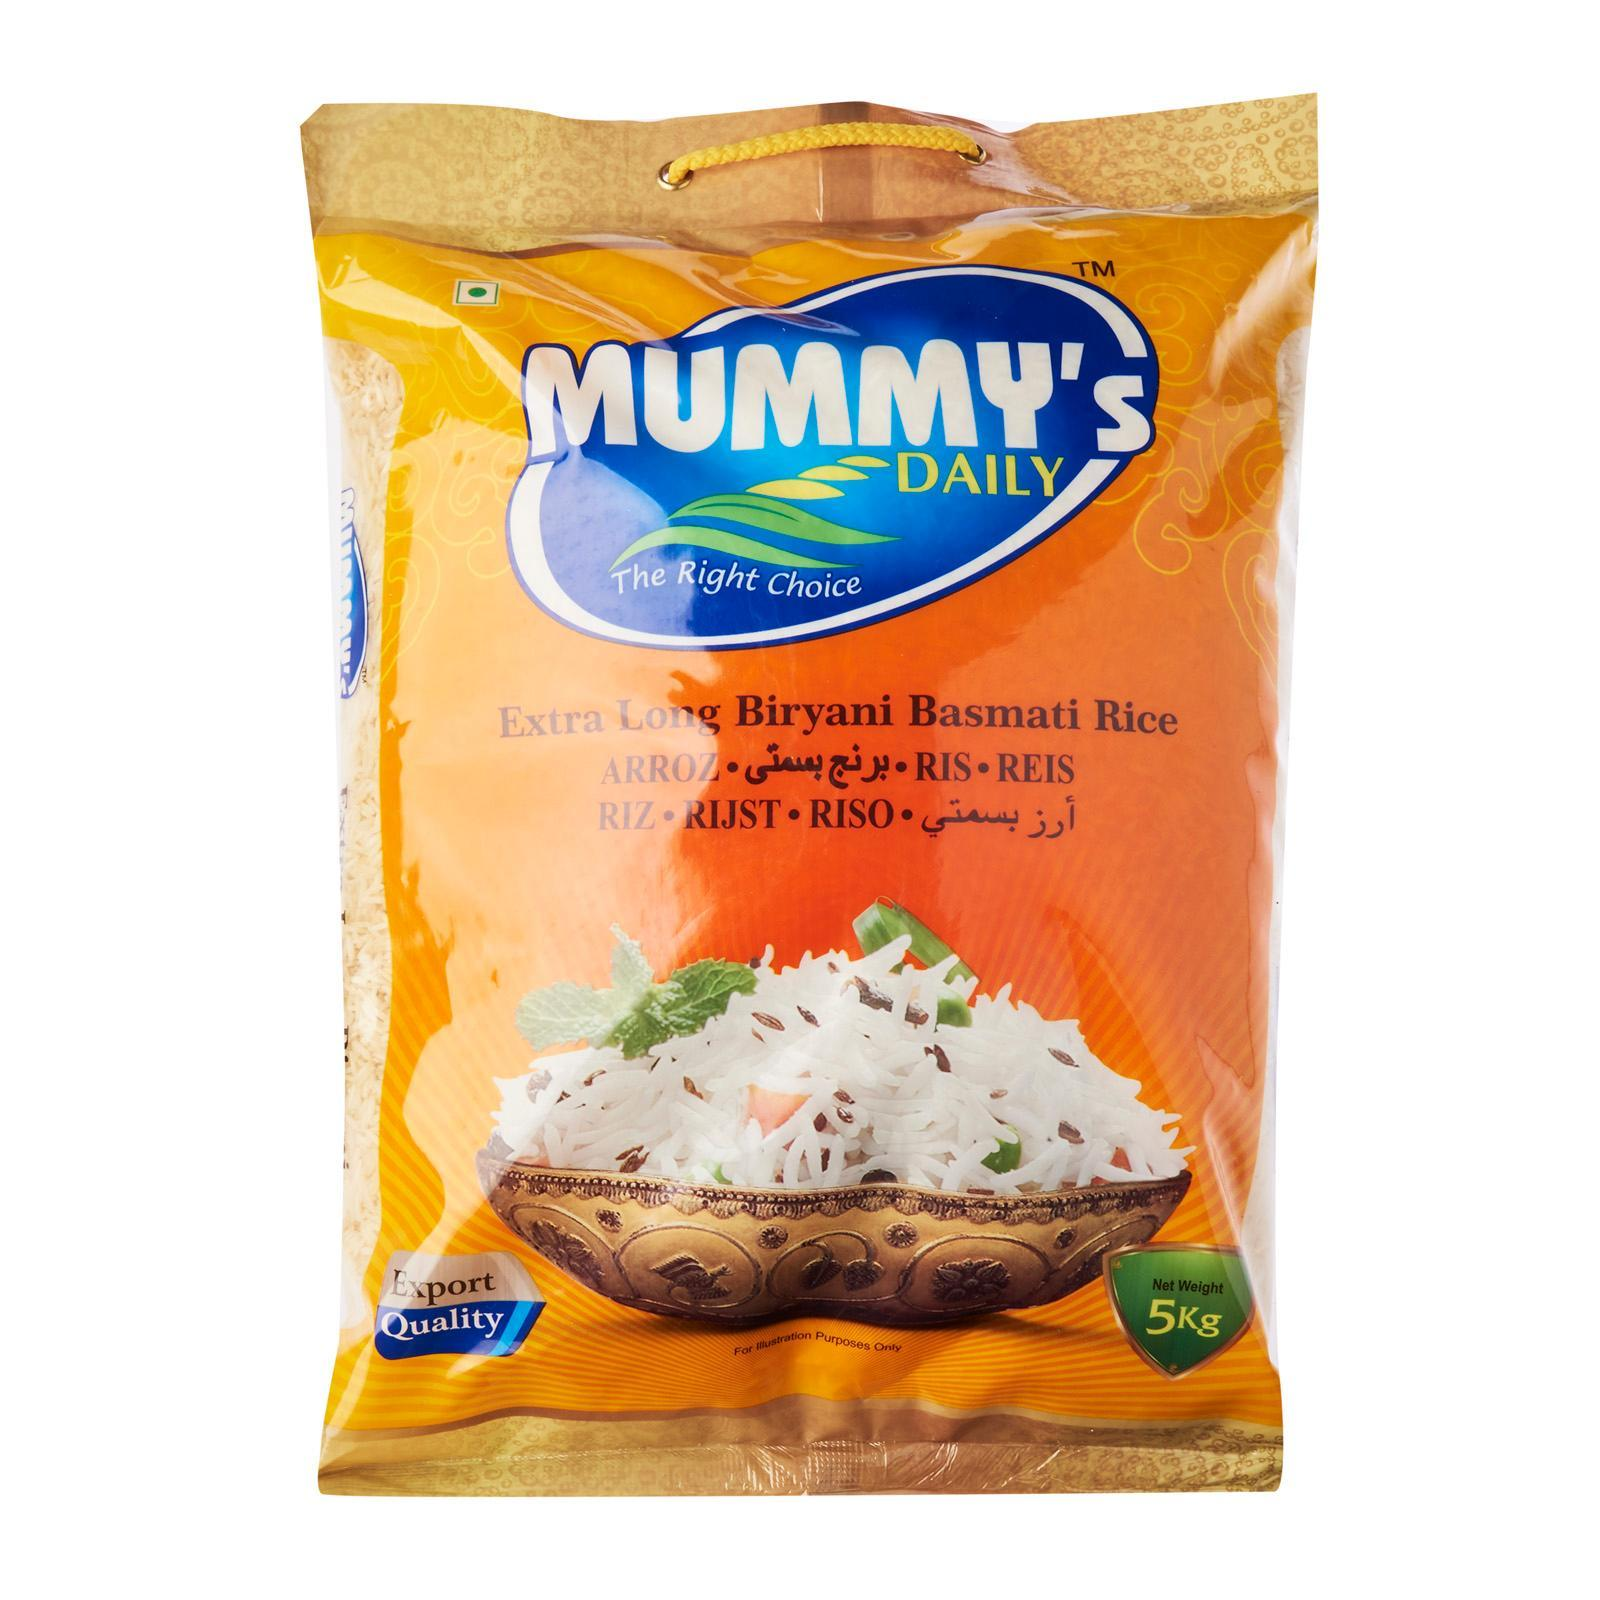 Mummys Daily Basmati Rice 5kg , Long-Grain Rice, Good For Diabetes, Healthy, Pure, Handpicked By Merlion Mart.